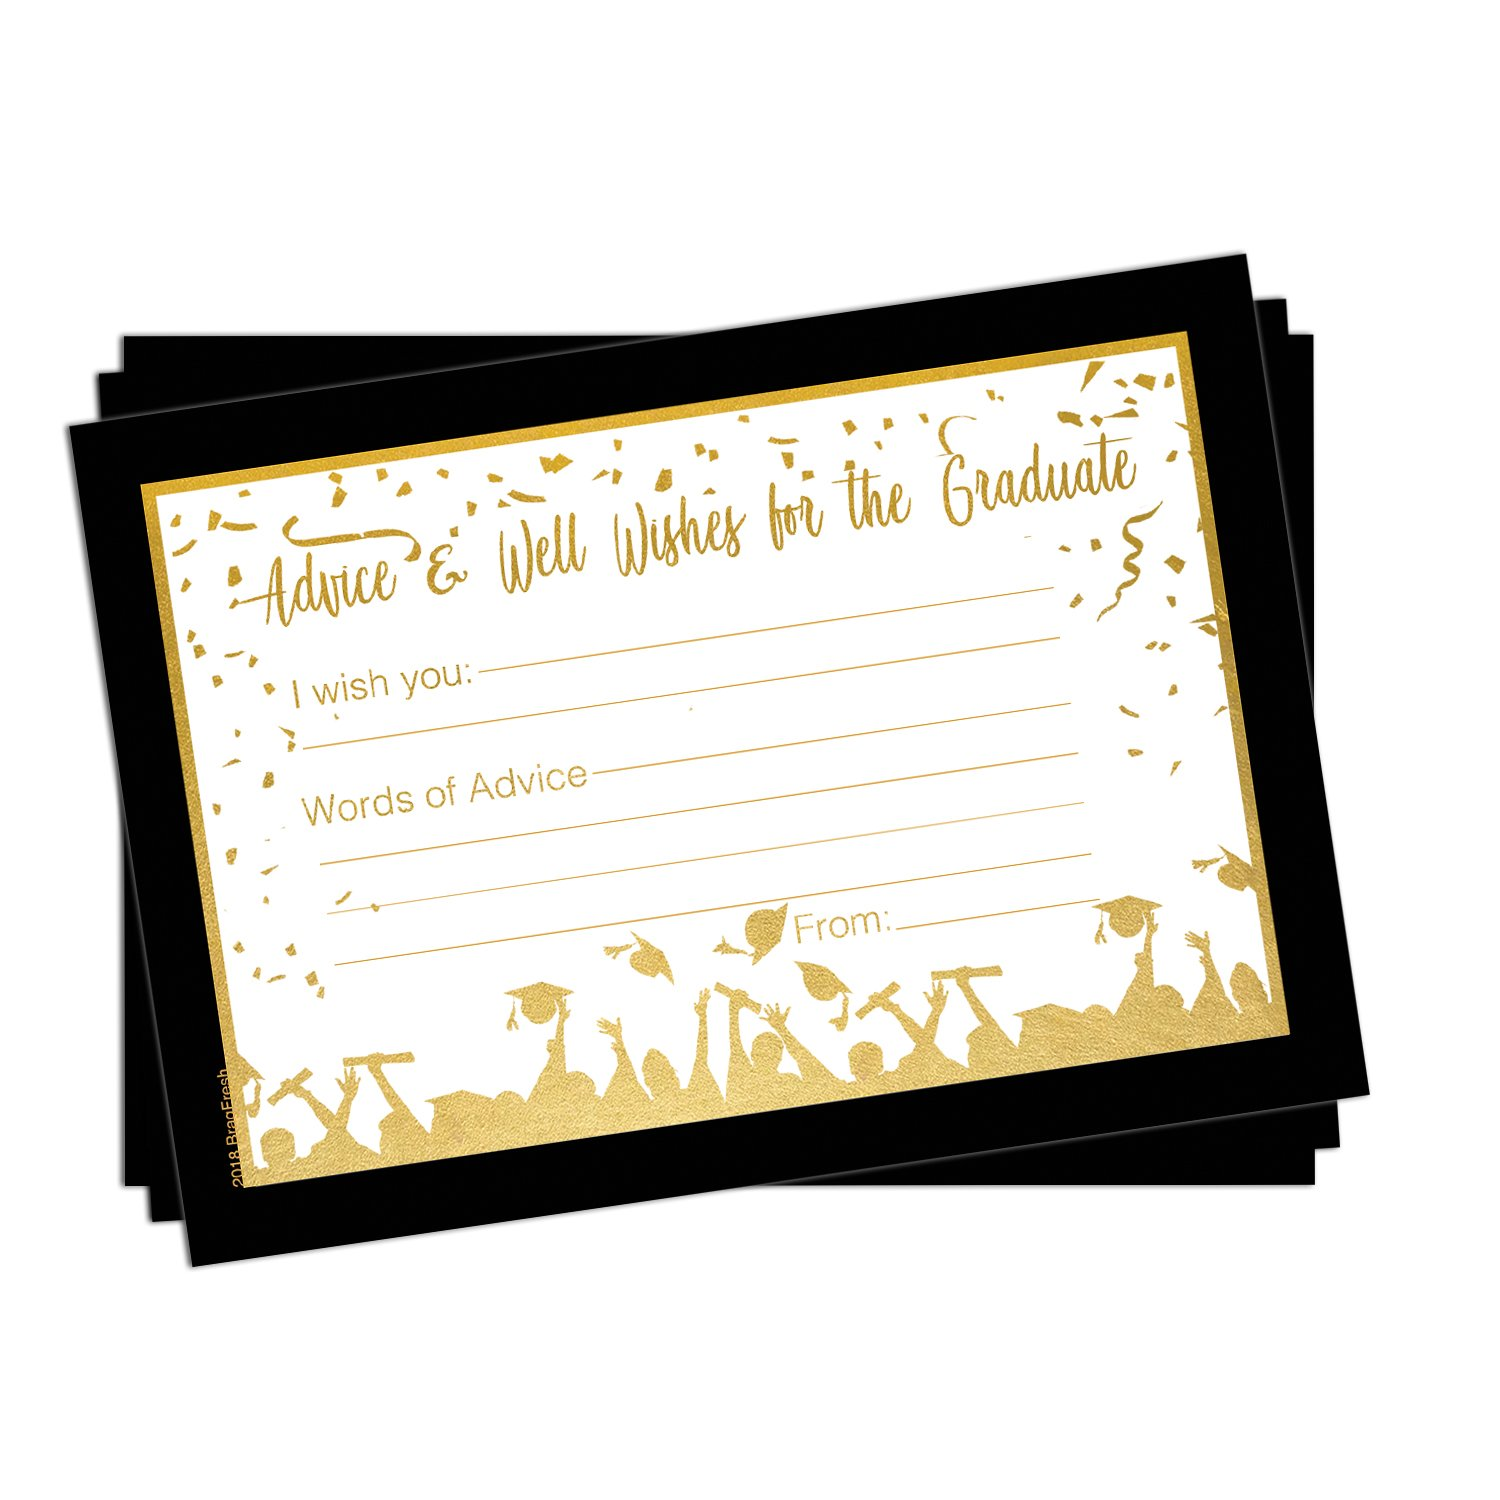 25 Graduation Advice Cards for the Graduate - High School or College Graduation Party Games Activities Invitations Decorations Supplies